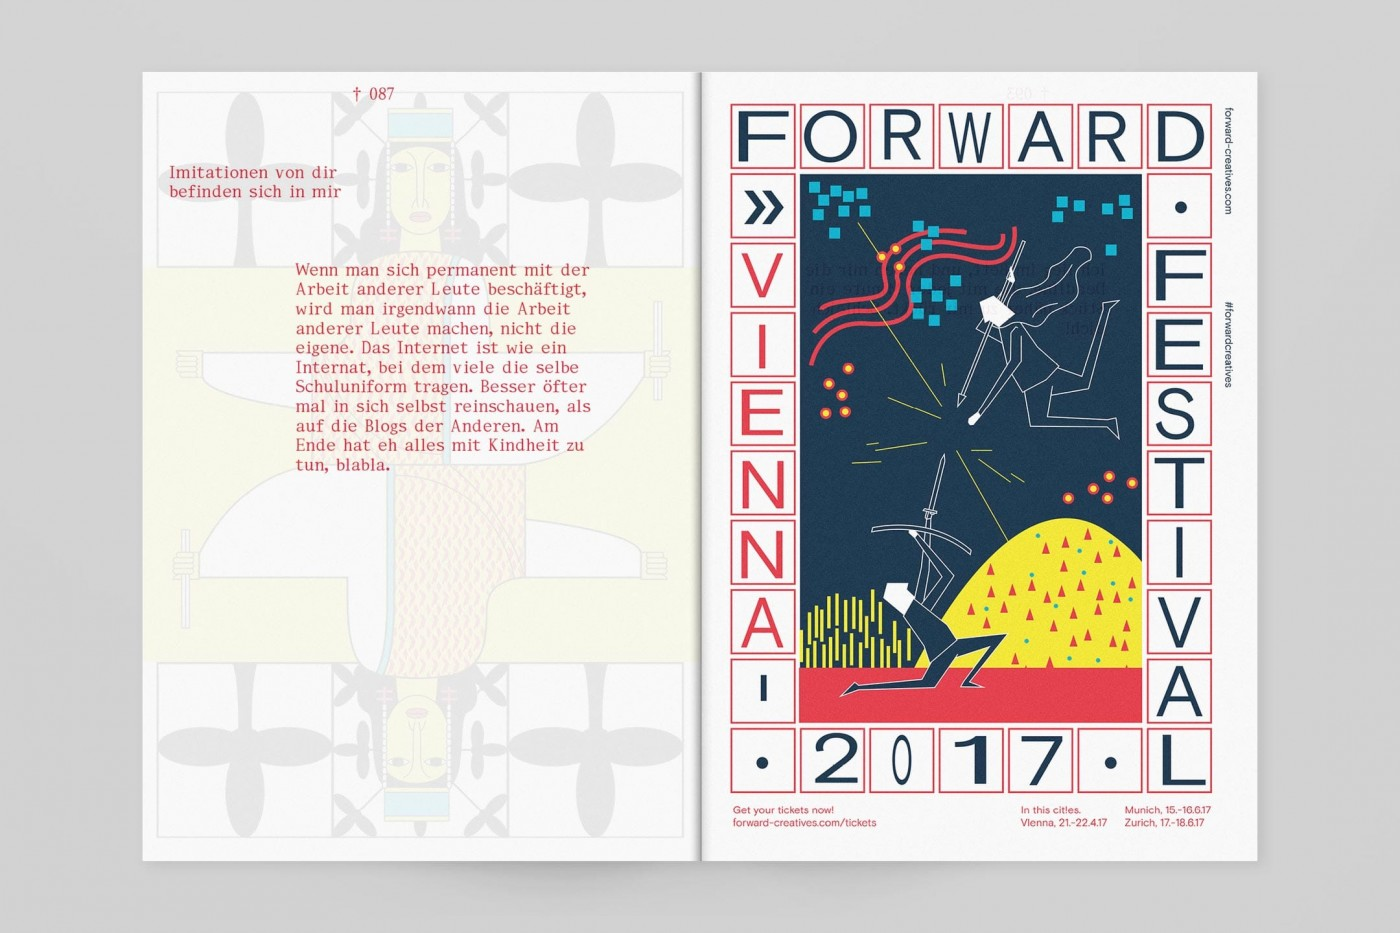 zwupp-forward17-programm-dismissed-7